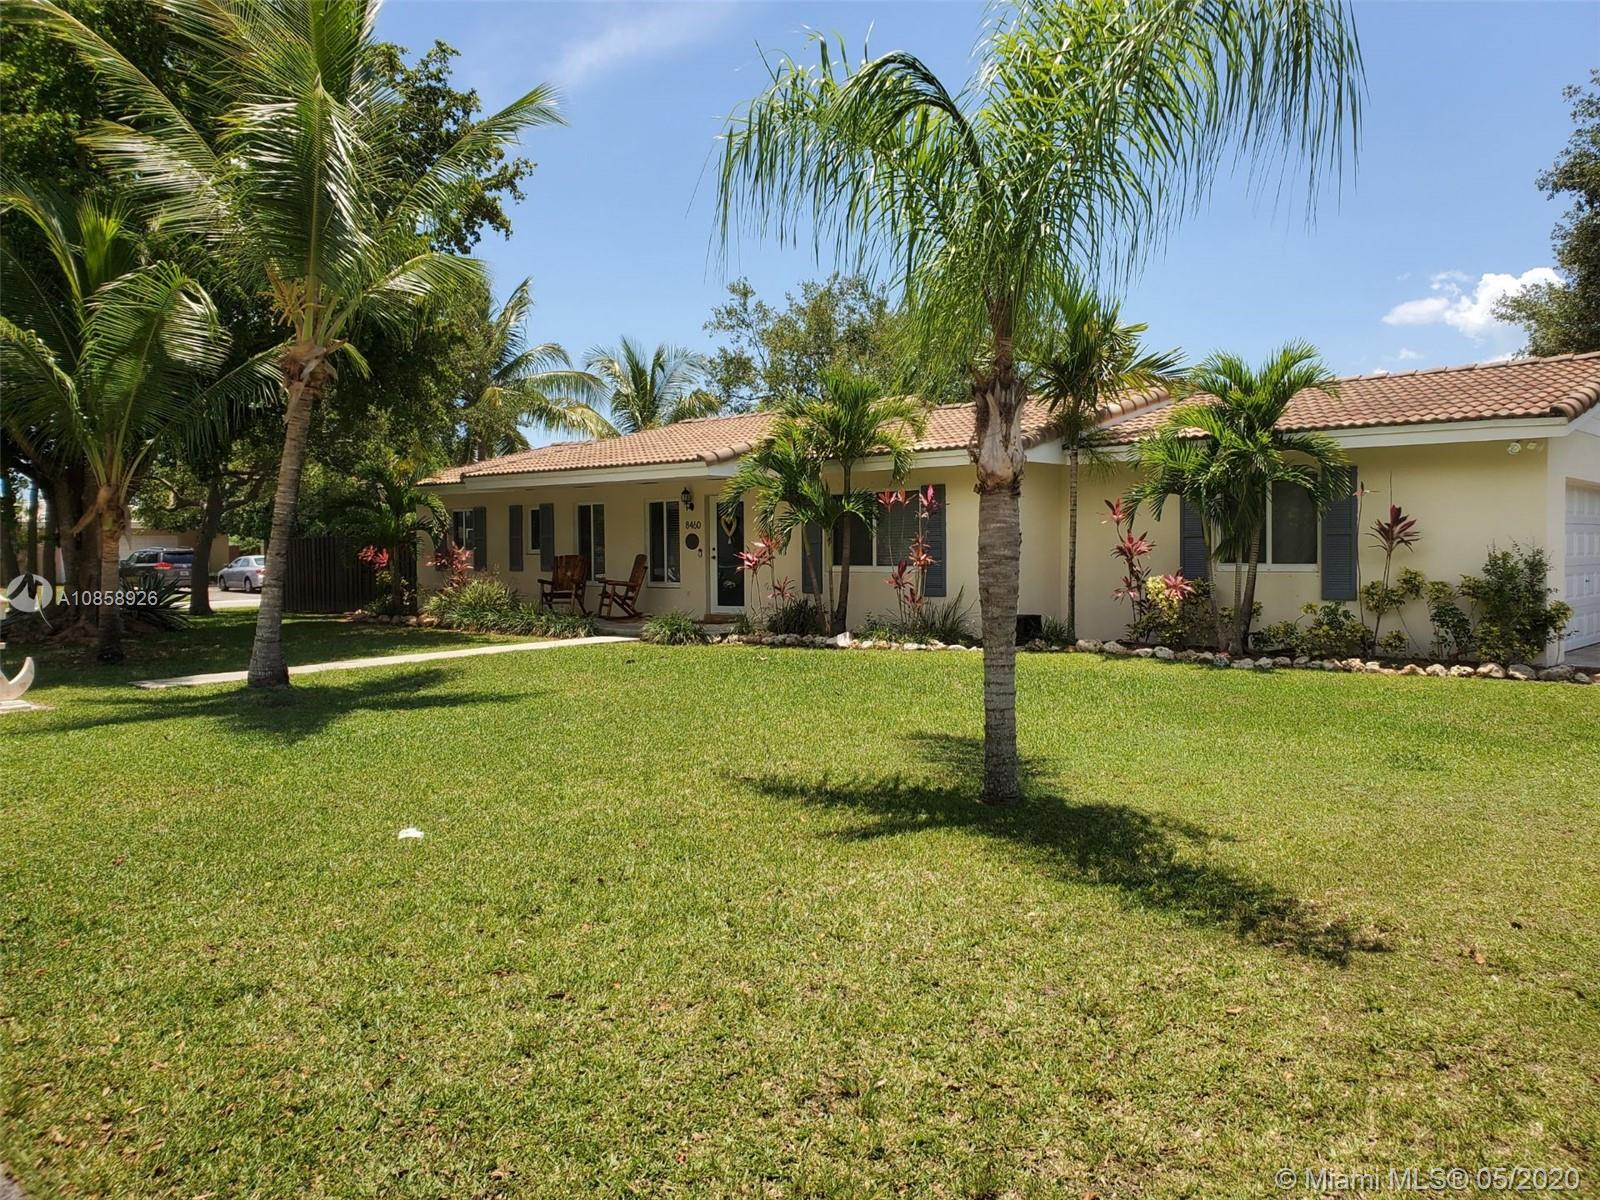 8460 SW 170th Ter, Palmetto Bay, Florida 33157, 3 Bedrooms Bedrooms, ,2 BathroomsBathrooms,Residential,For Sale,8460 SW 170th Ter,A10858926